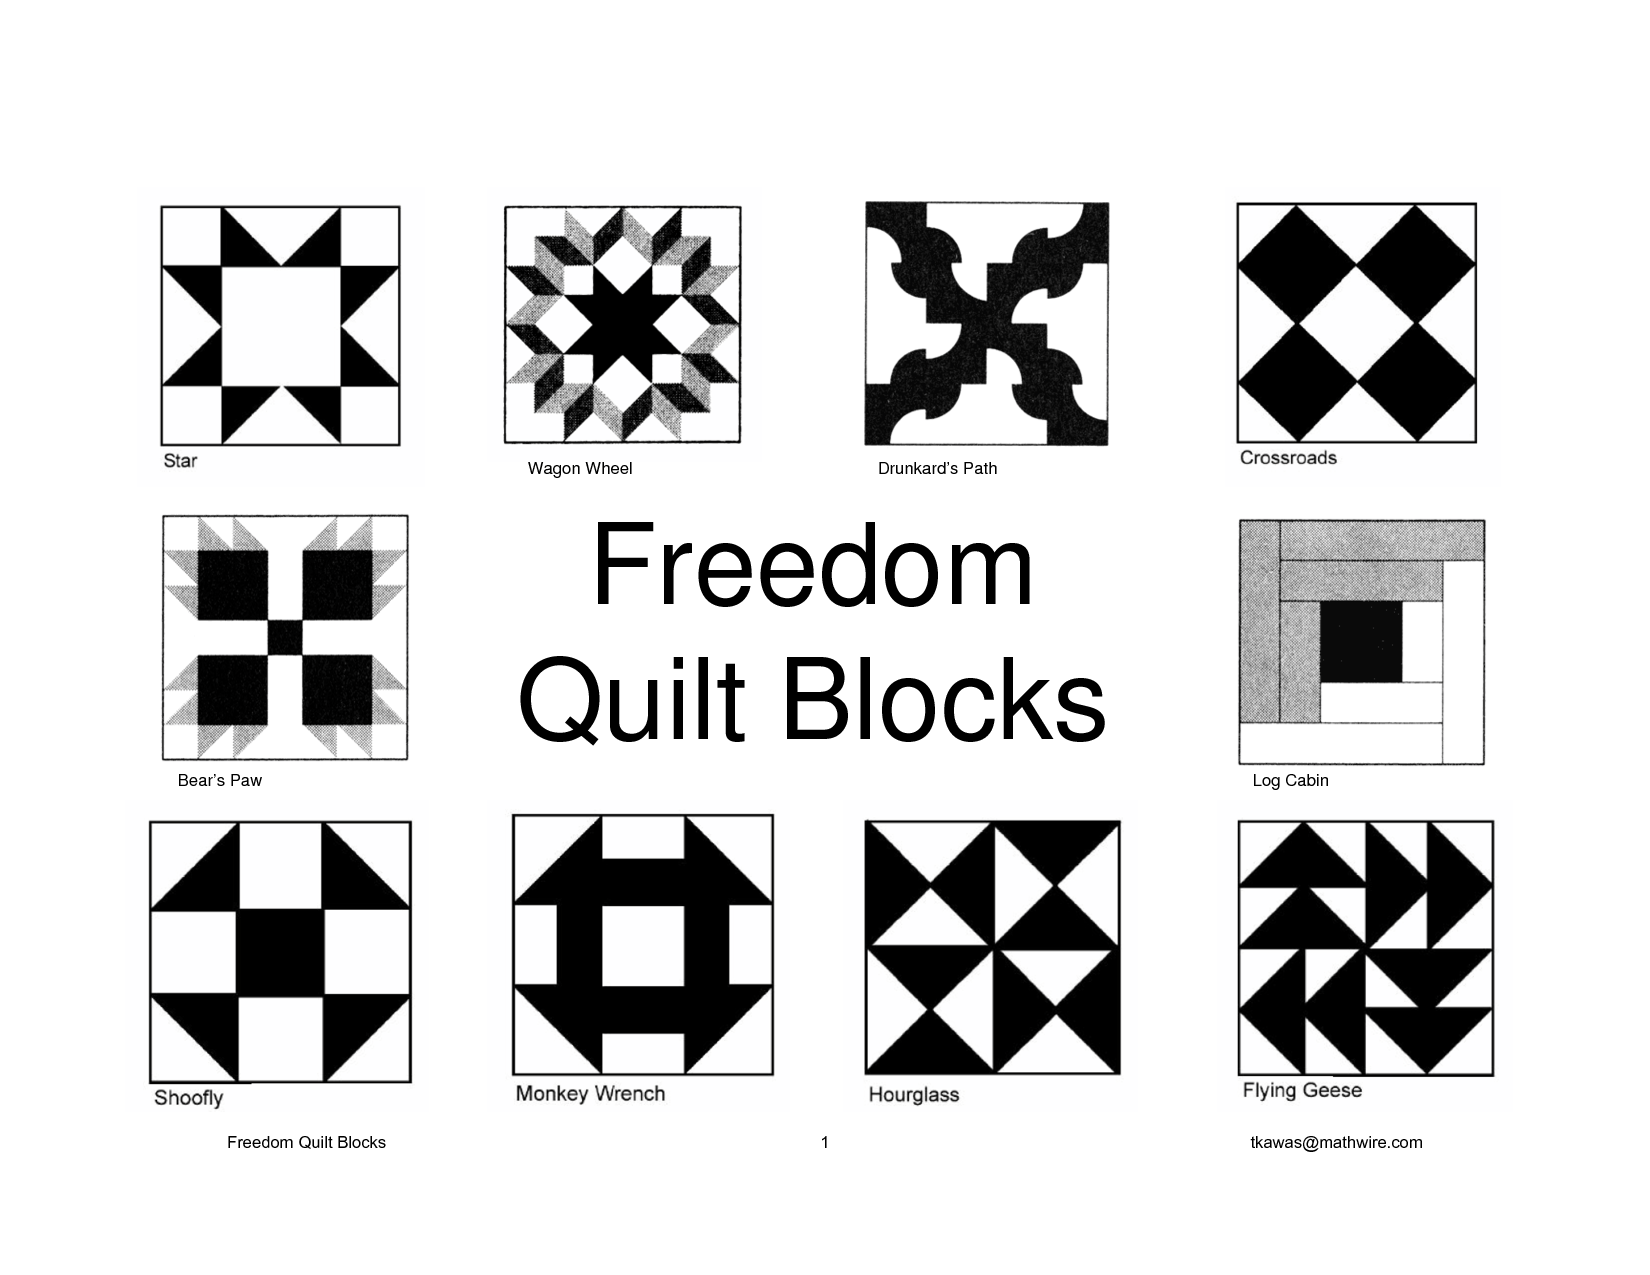 Freedom Quilt Or Quilts To Freedom